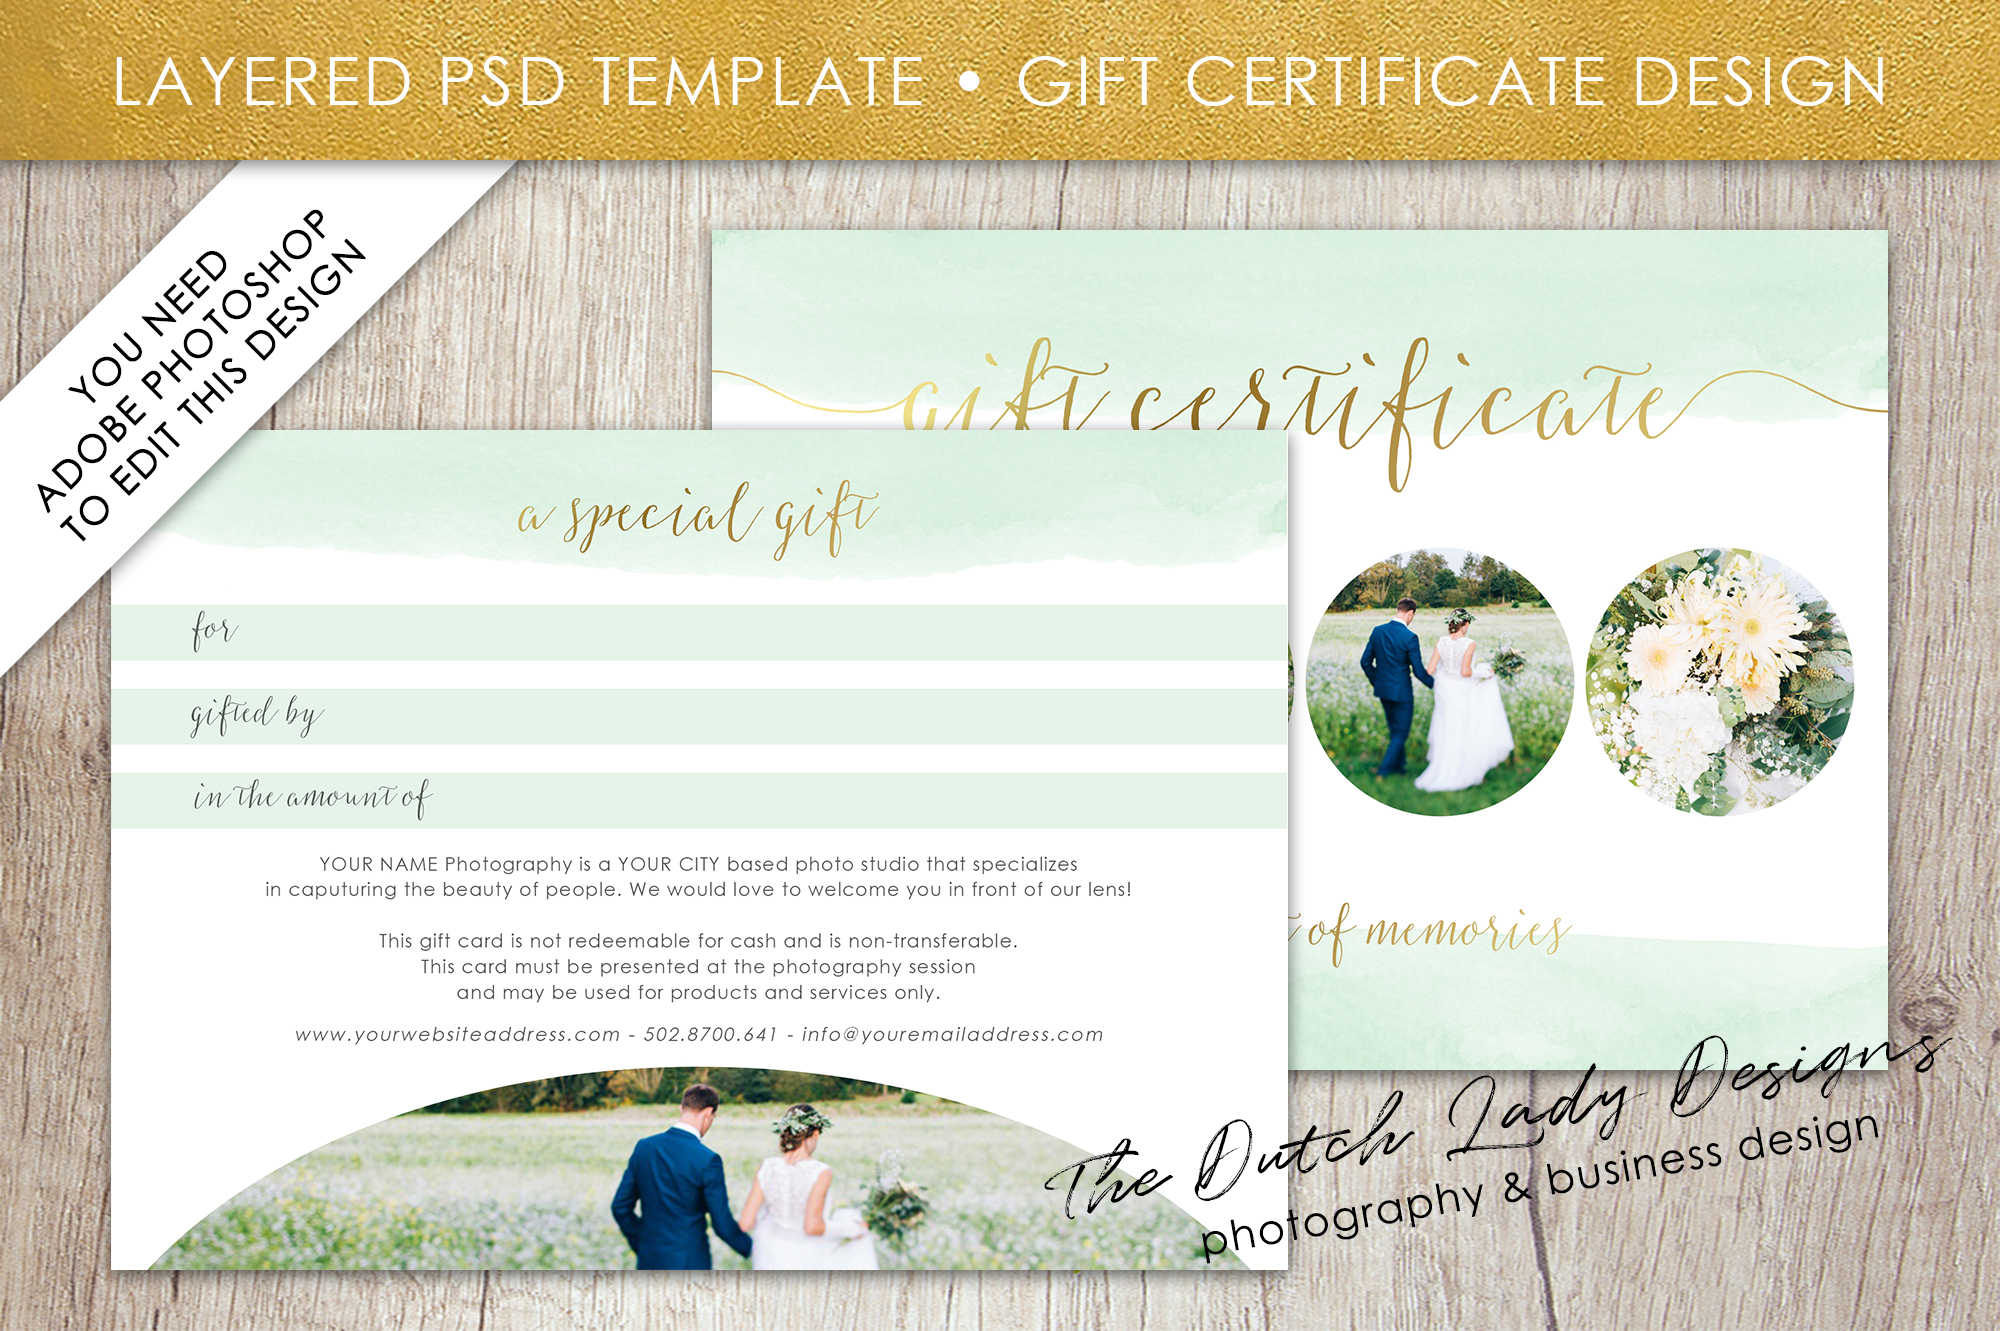 Photo Gift Card Template for Adobe Photoshop - #52 example image 2